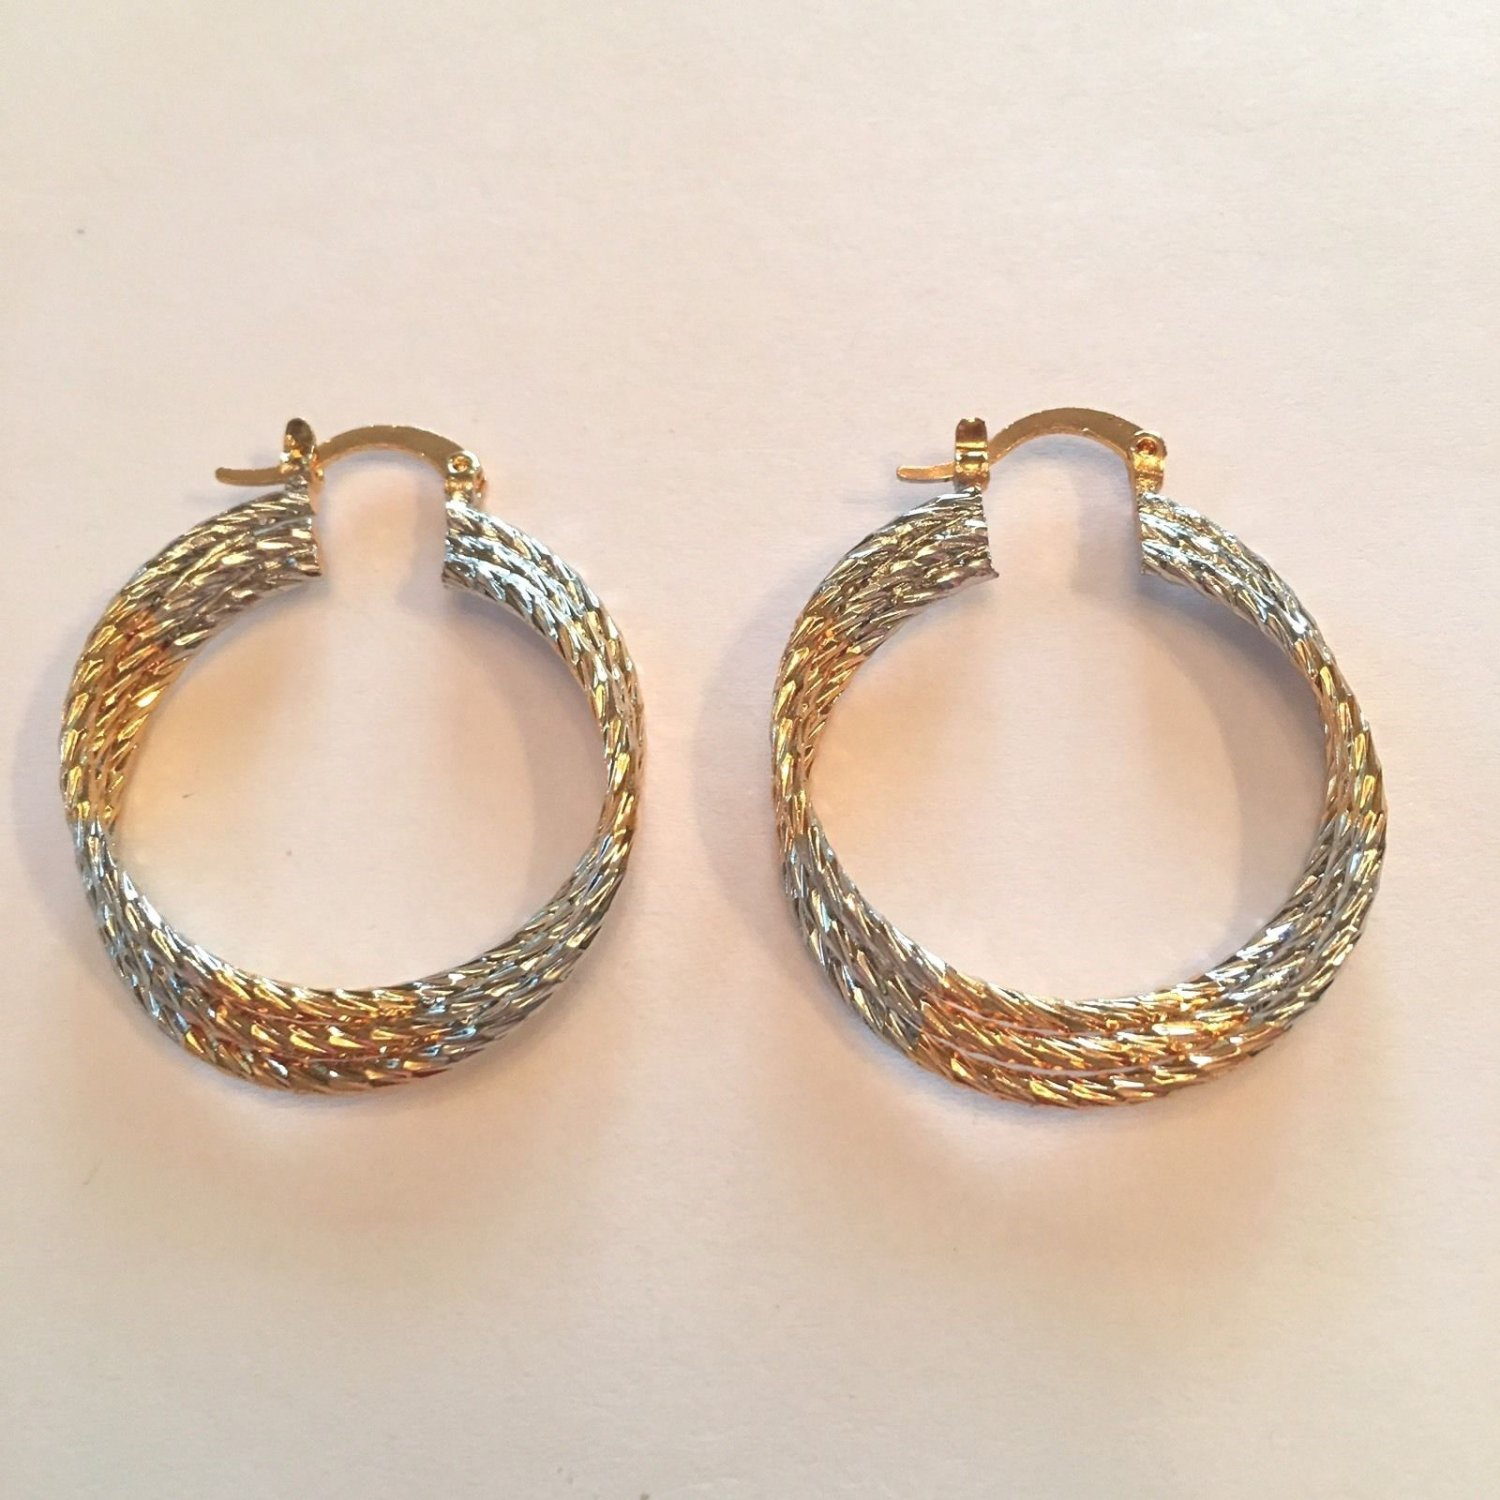 YELLOW GOLD & SILVER PLATE TRIPLE RING HOOP EARRINGS SNAP CLOSURE FREE SHIP #23